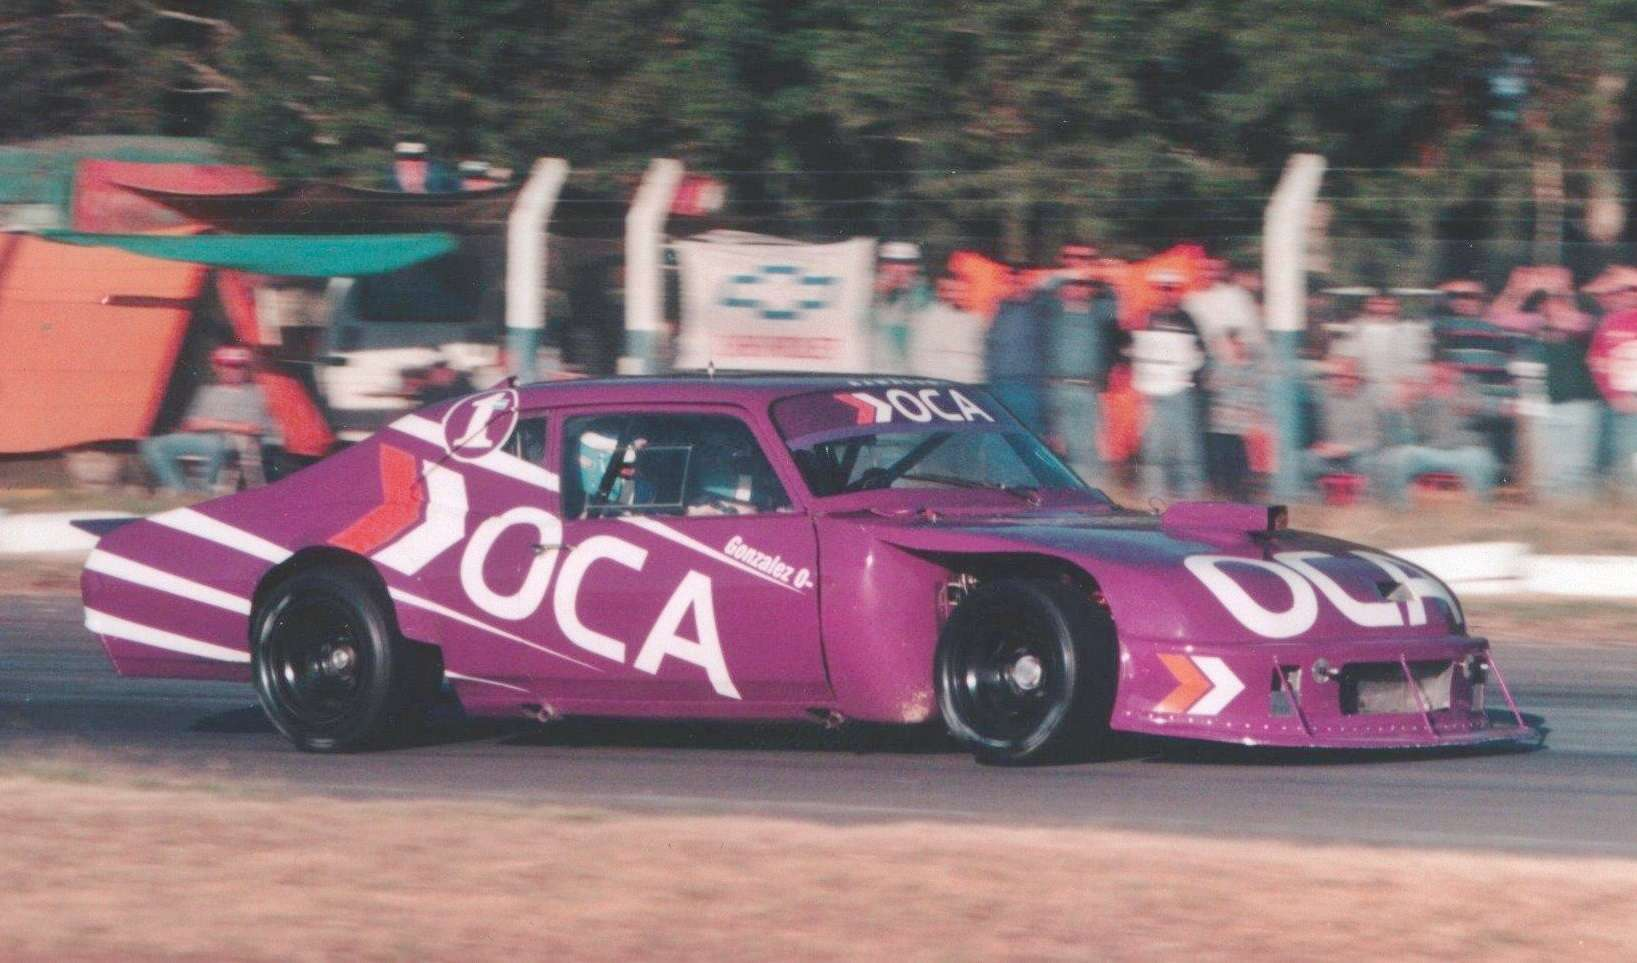 1995 Chevy TC de OCA J. M. Traverso